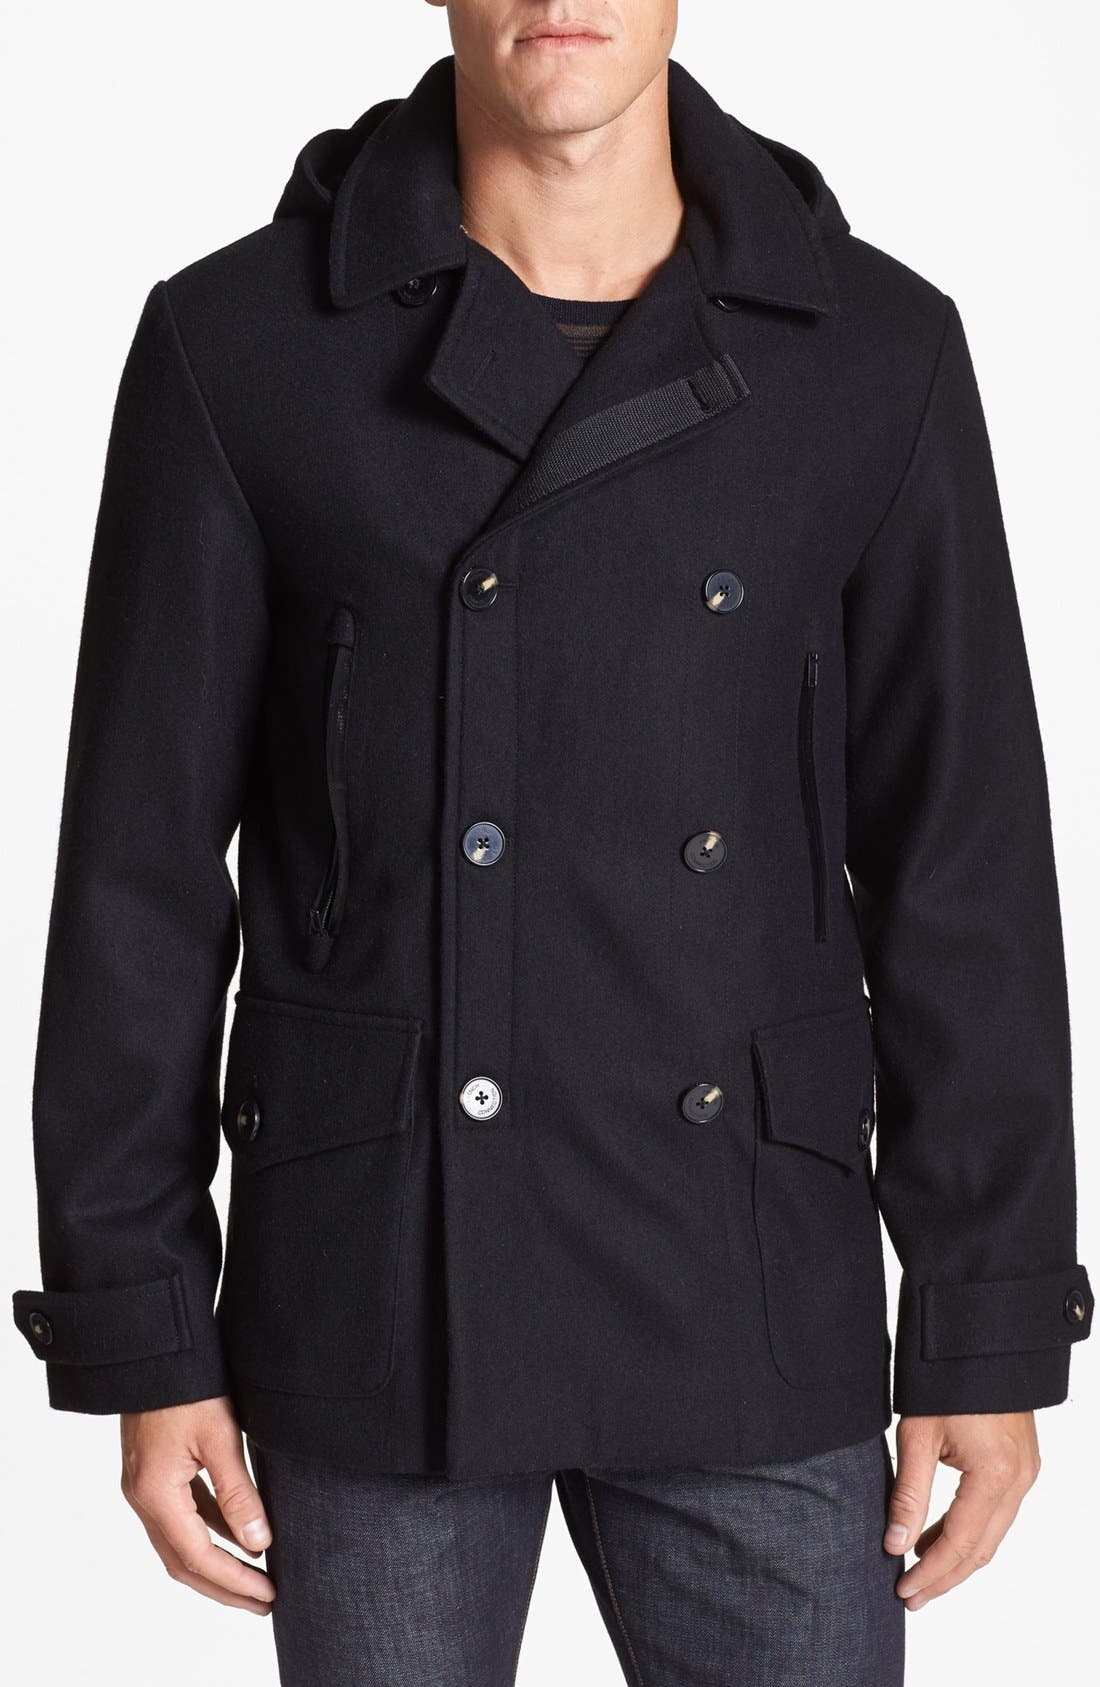 Alternate Image 1 Selected - French Connection 'Marine Melton' Hooded Peacoat